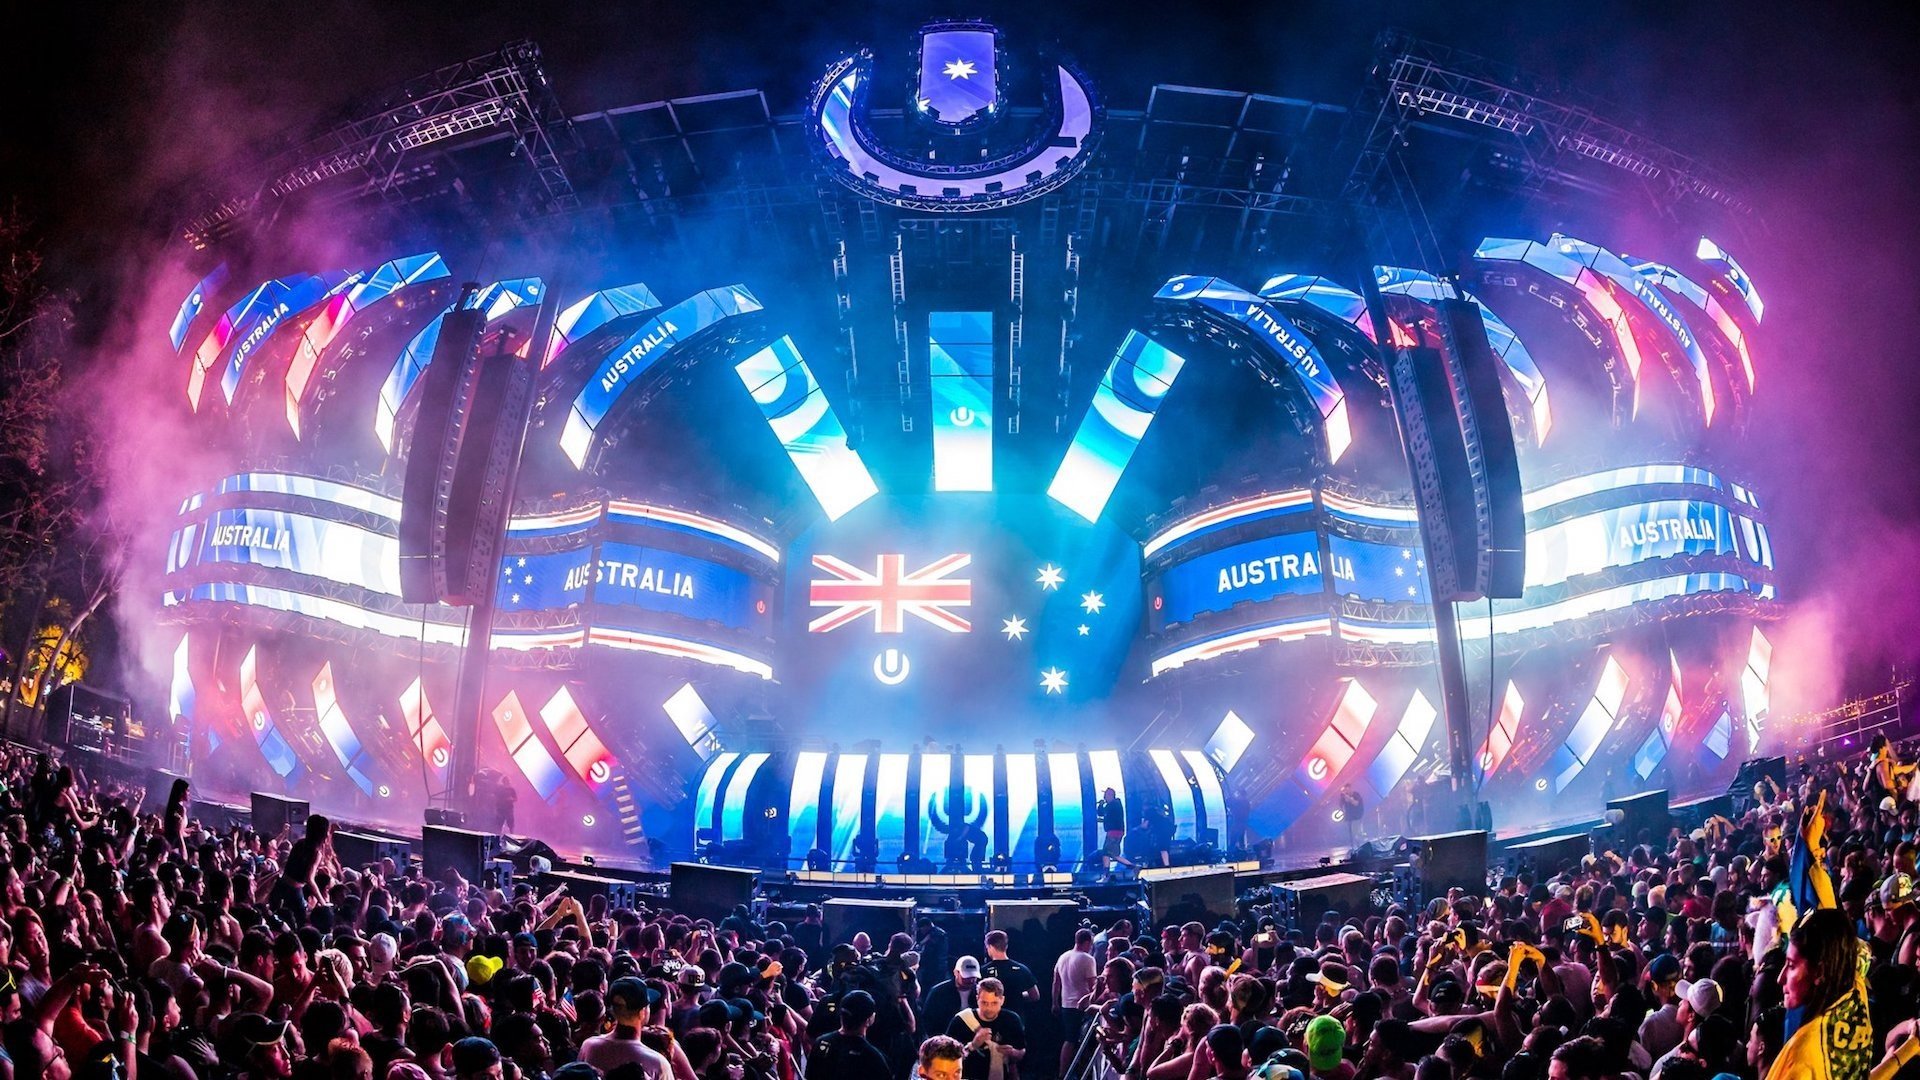 1920x1080 Ultra Music Festival Announces 2018 Australian Date And Venue - Music Feeds